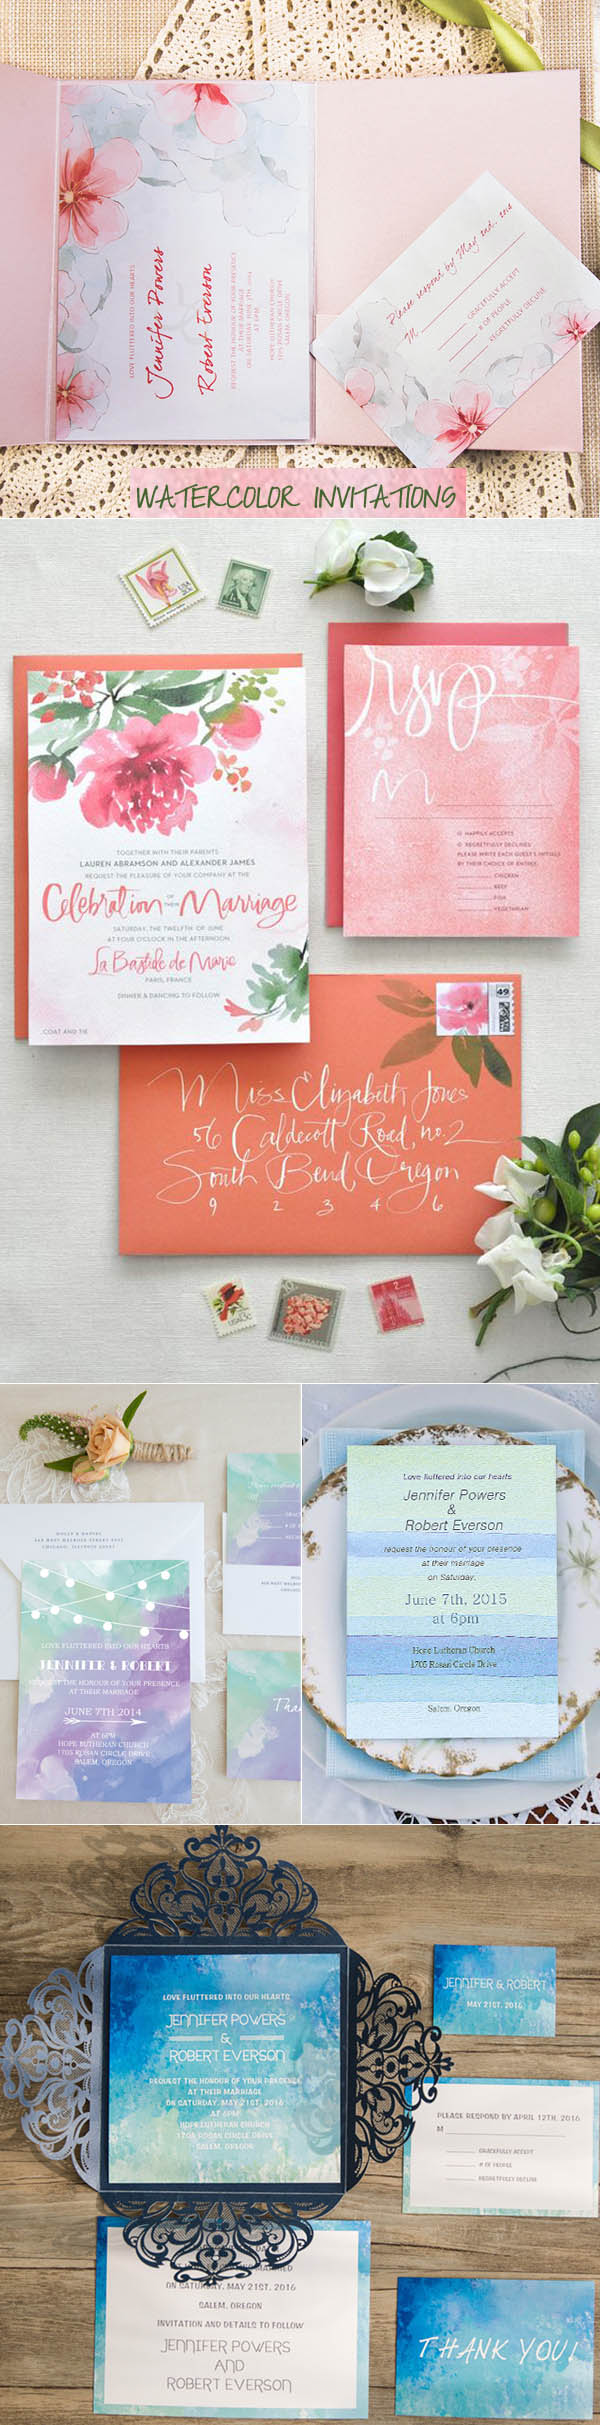 beautiful watercolor wedding invitations trends